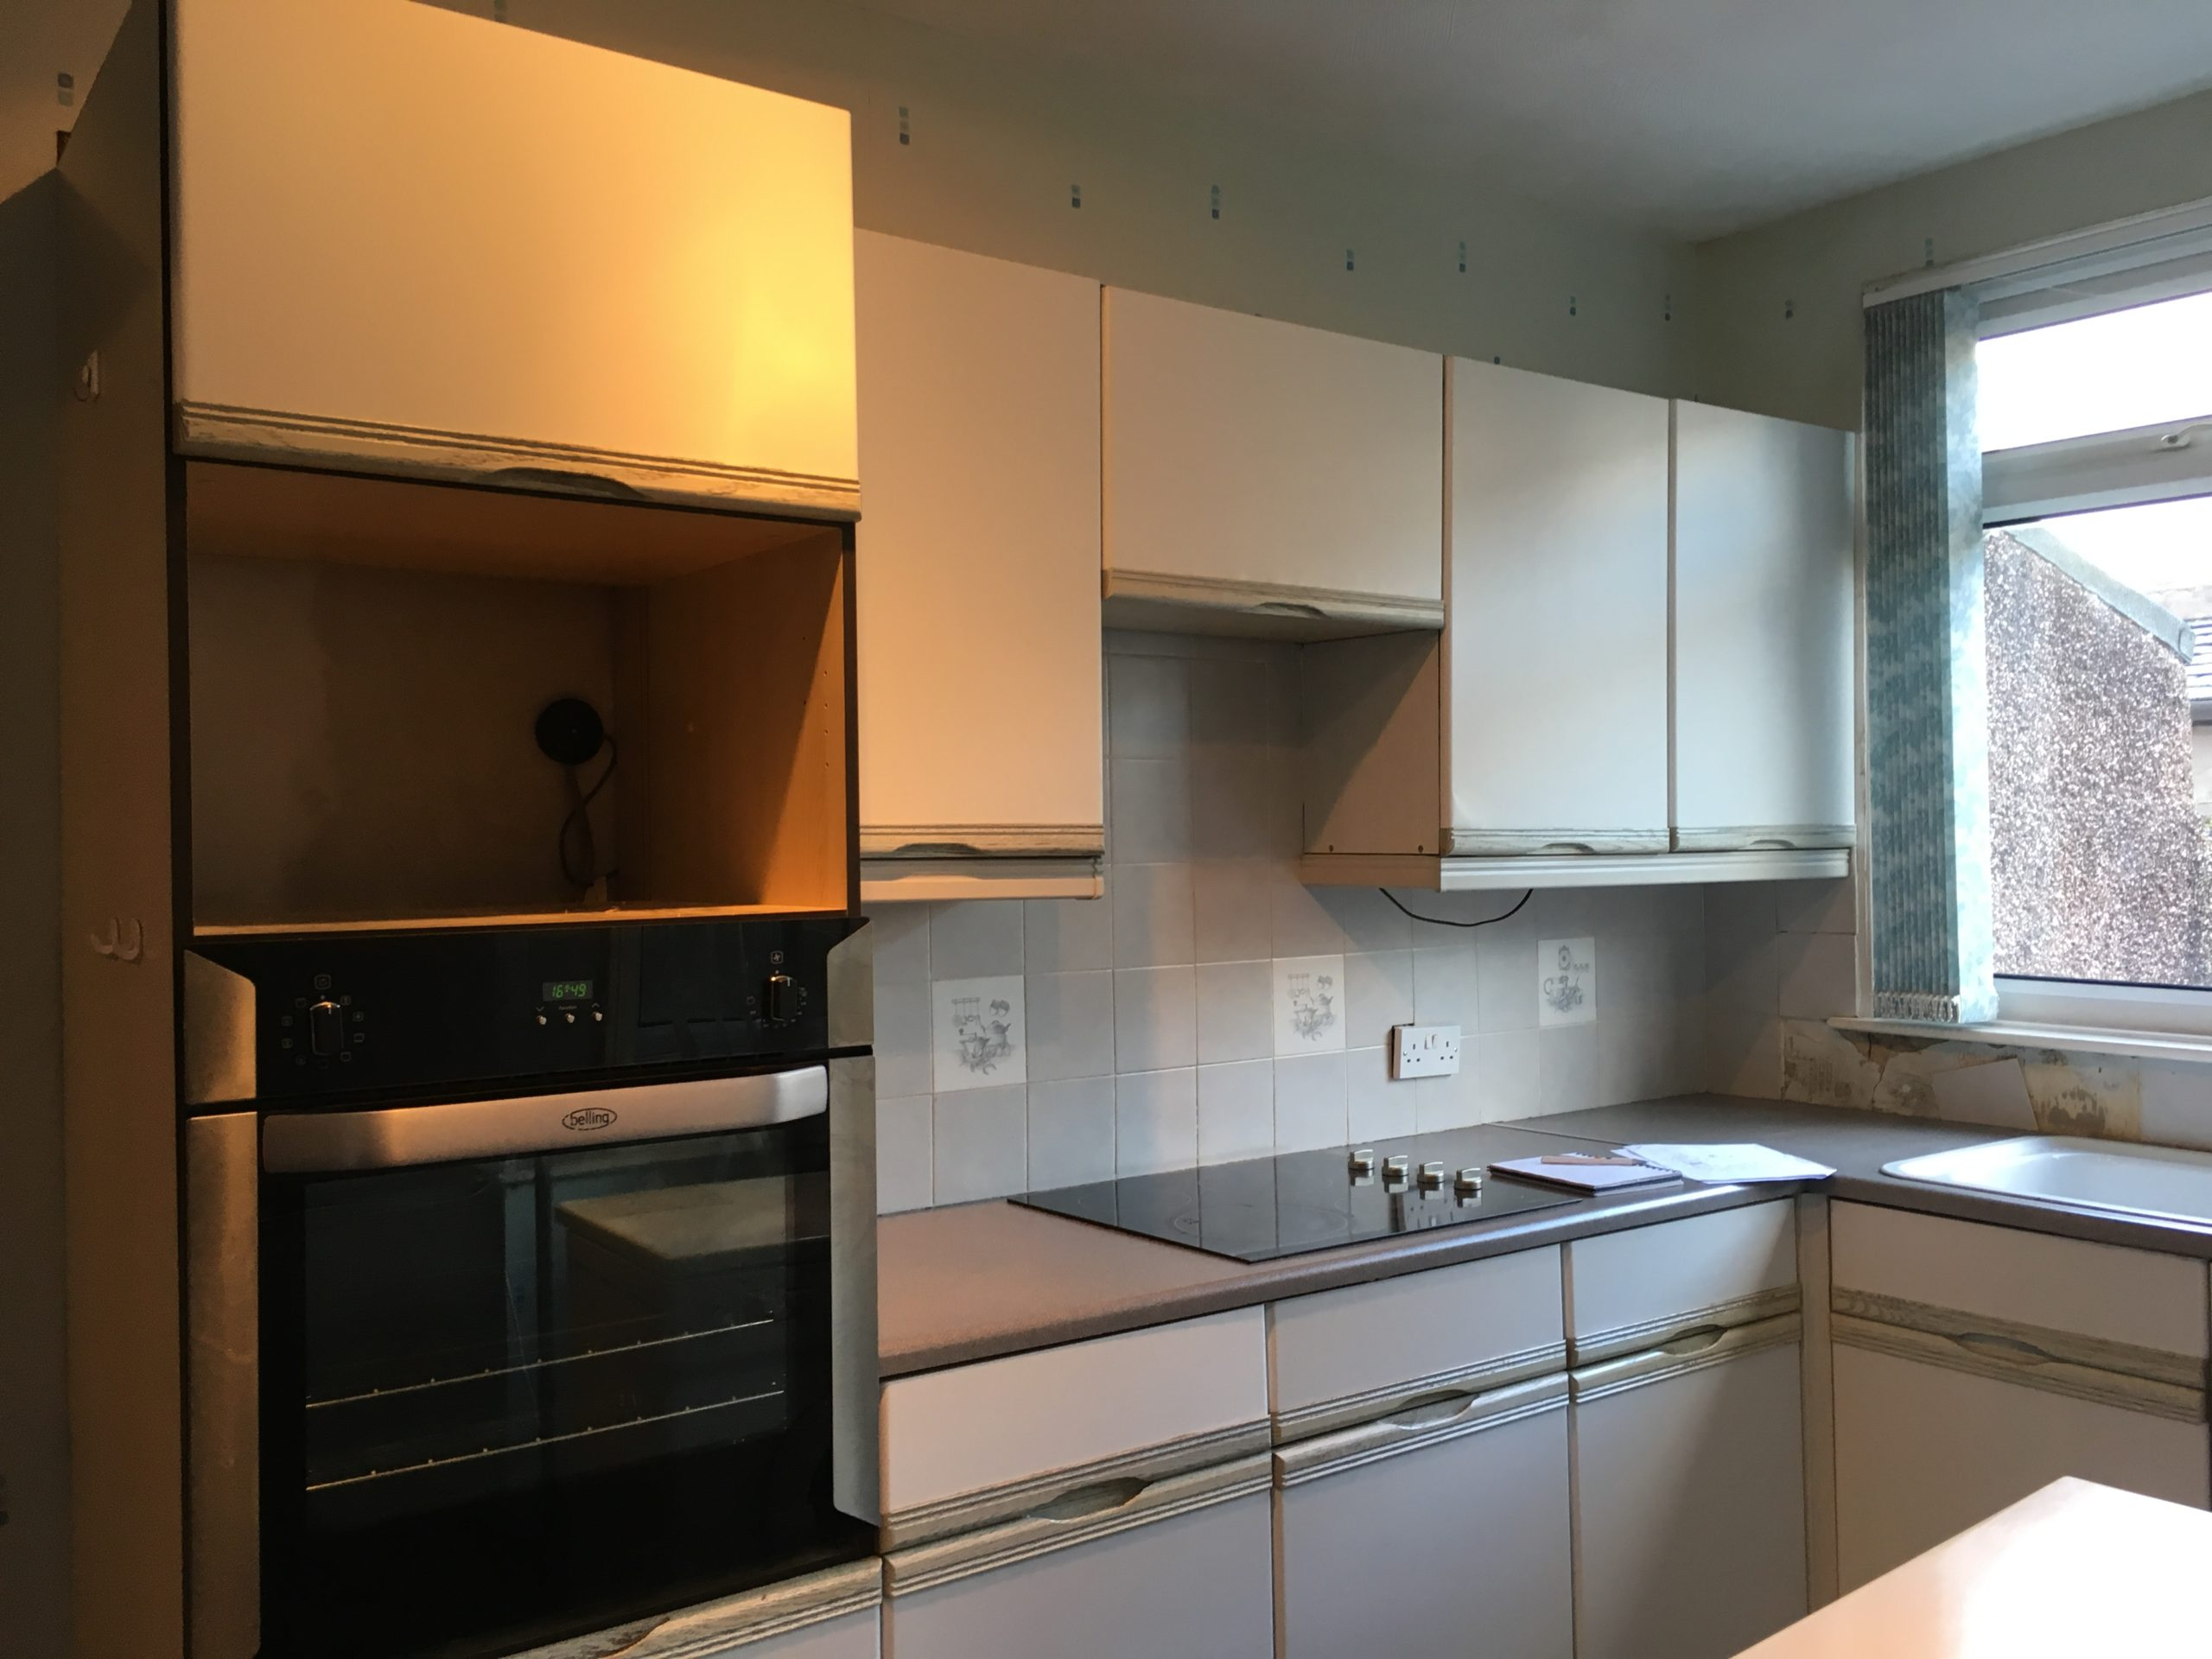 Affordable kitchen transformation before image